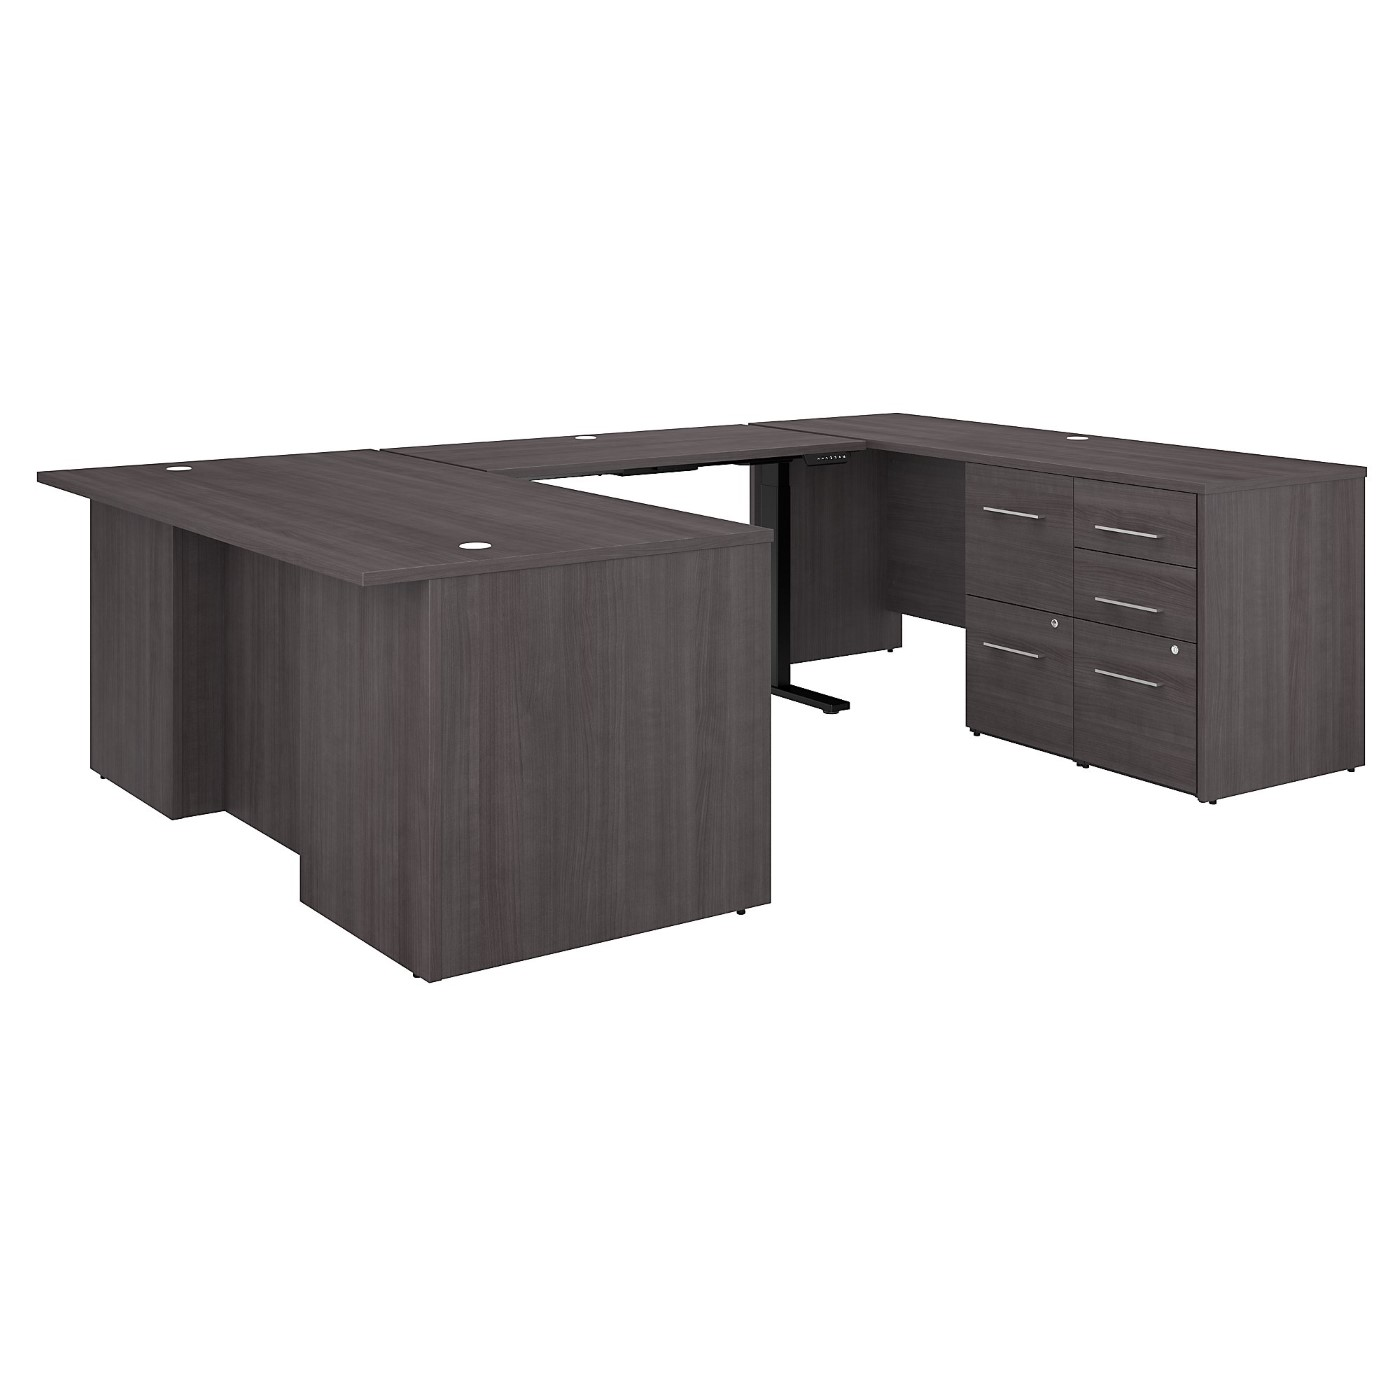 BUSH BUSINESS FURNITURE OFFICE 500 72W HEIGHT ADJUSTABLE U SHAPED EXECUTIVE DESK WITH DRAWERS. FREE SHIPPING